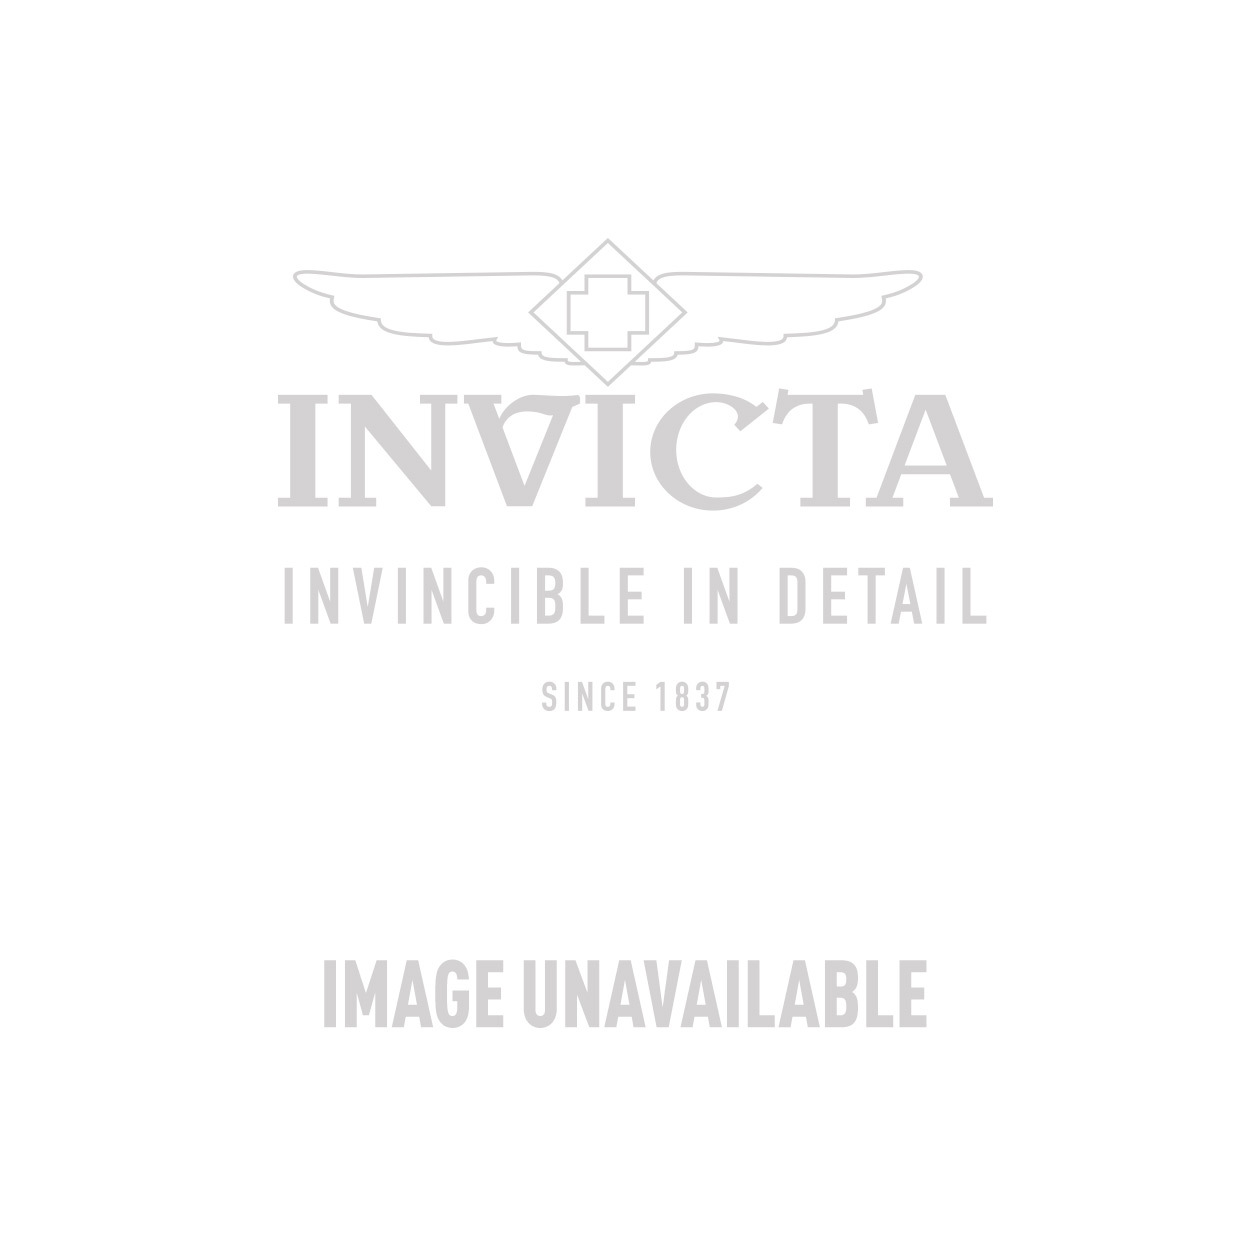 Invicta Speedway Quartz Watch - Stainless Steel case with Moro tone Leather band - Model 18383